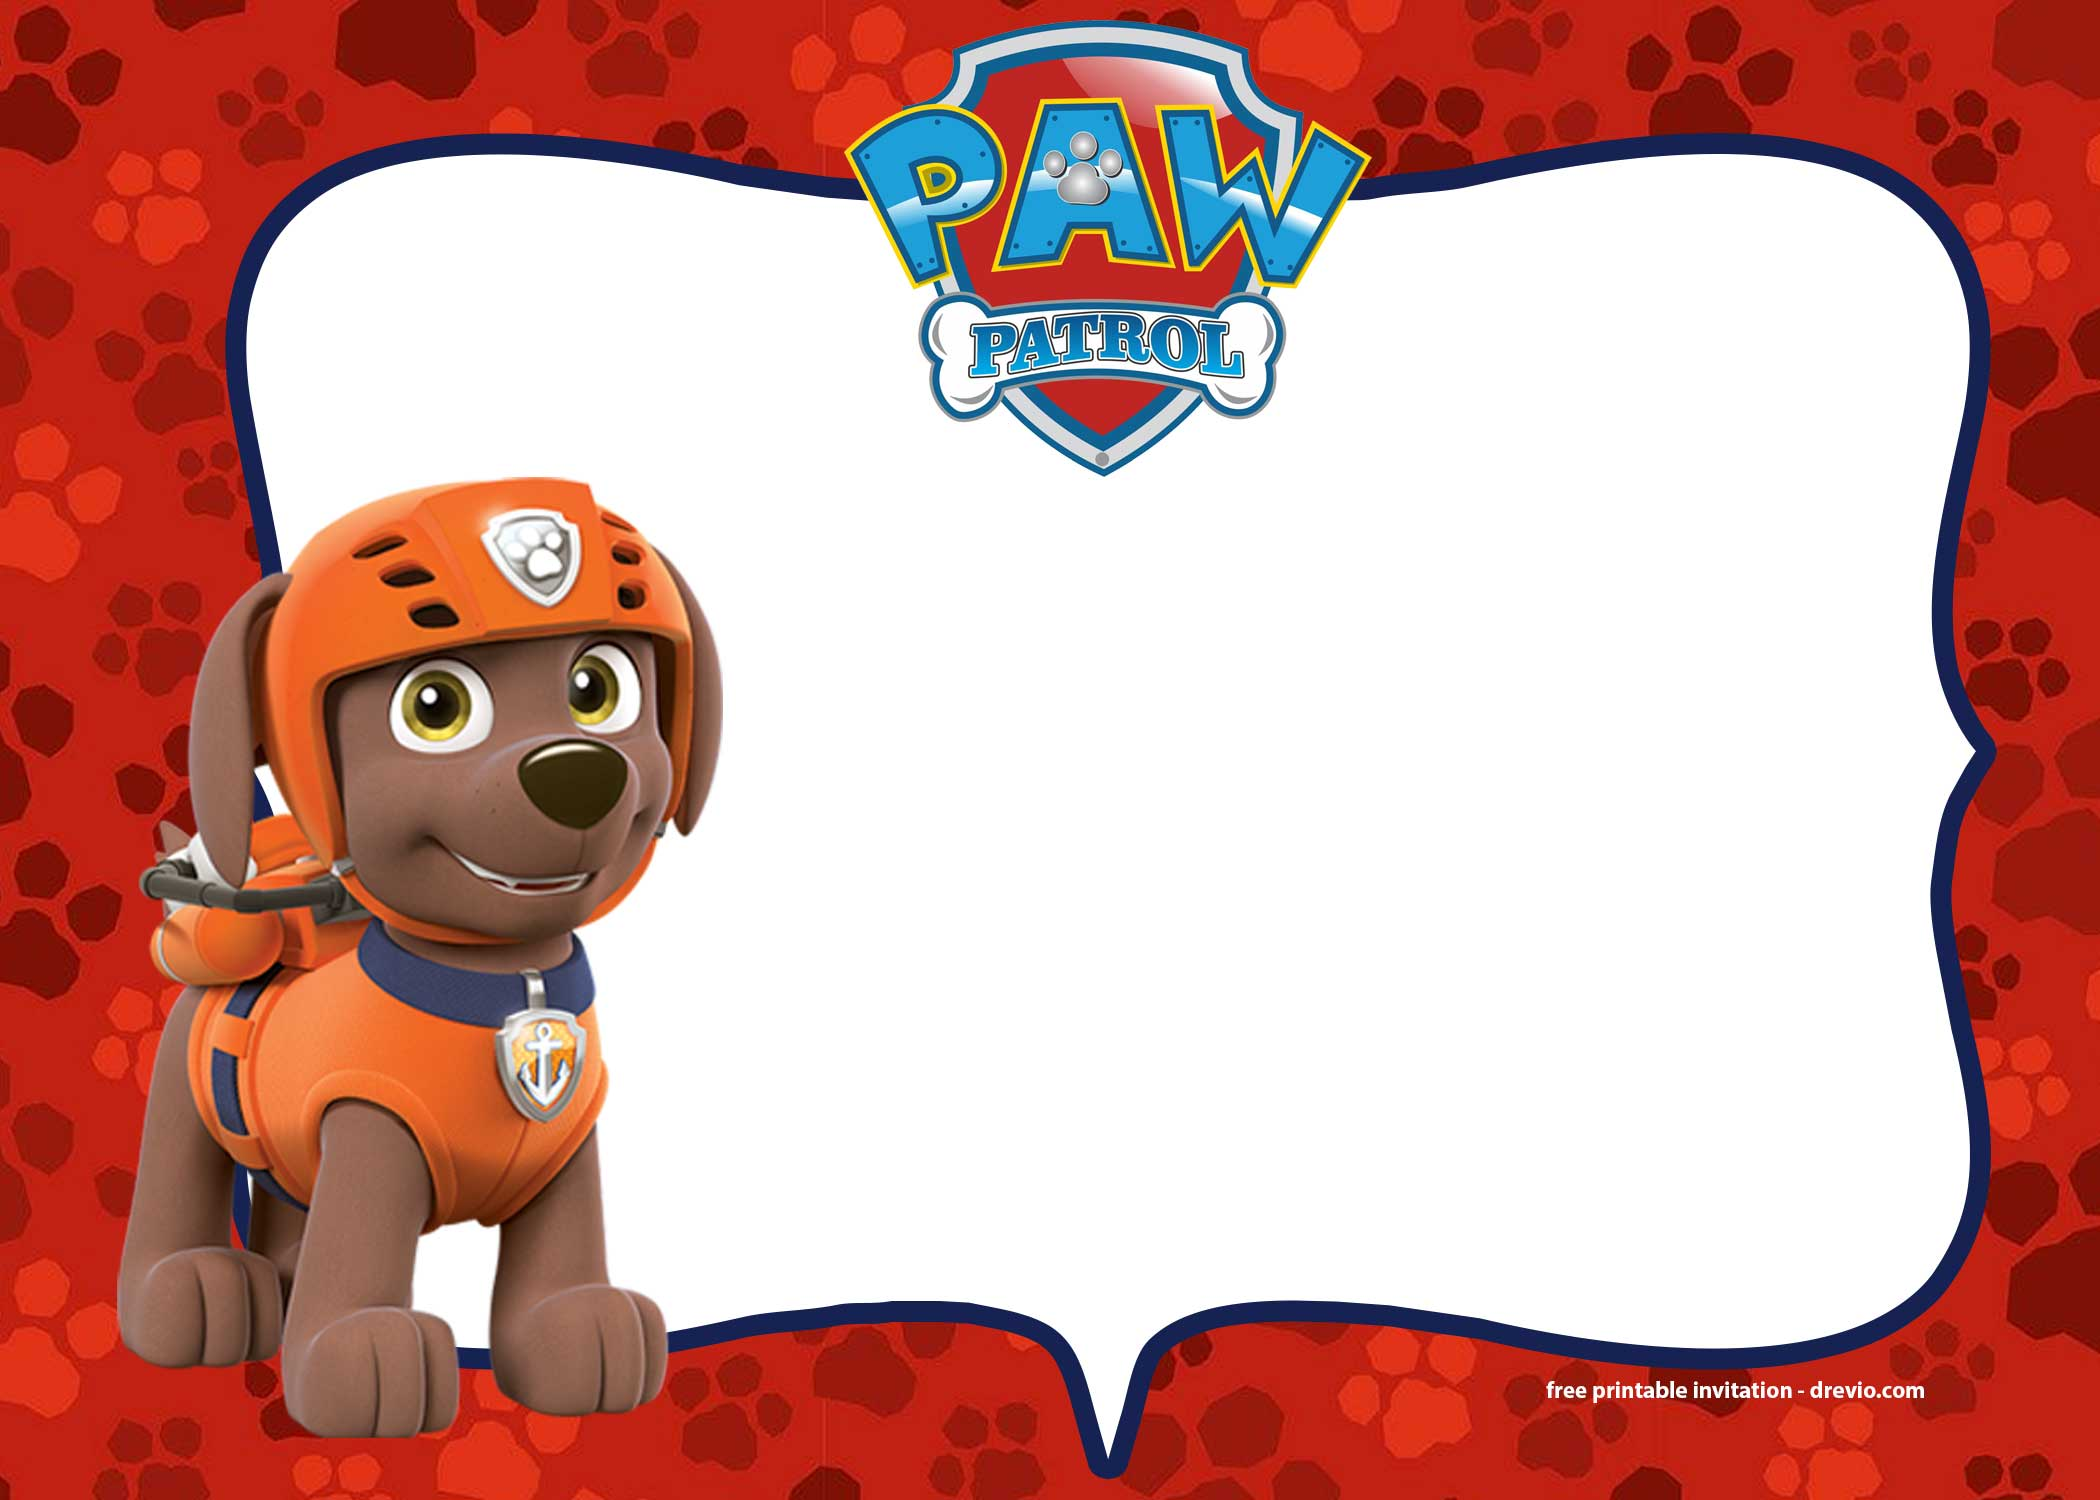 free paw patrol birthday invitations templates - free invitation templates